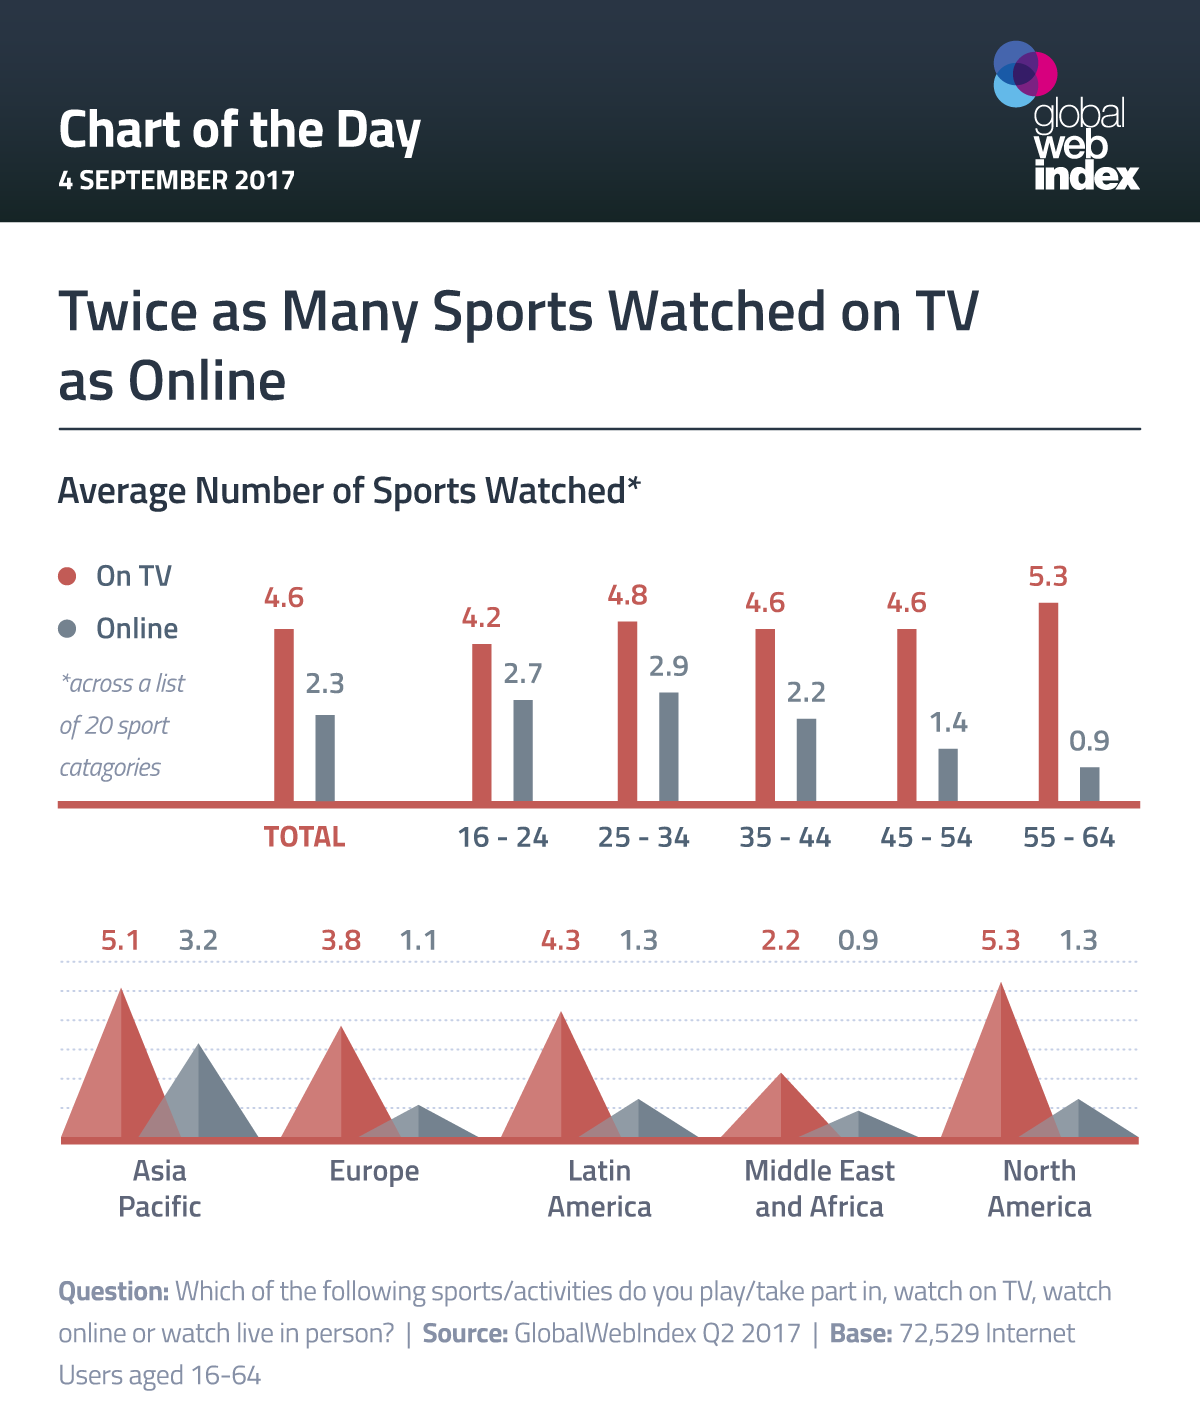 Twice as Many Sports Watched on TV as Online